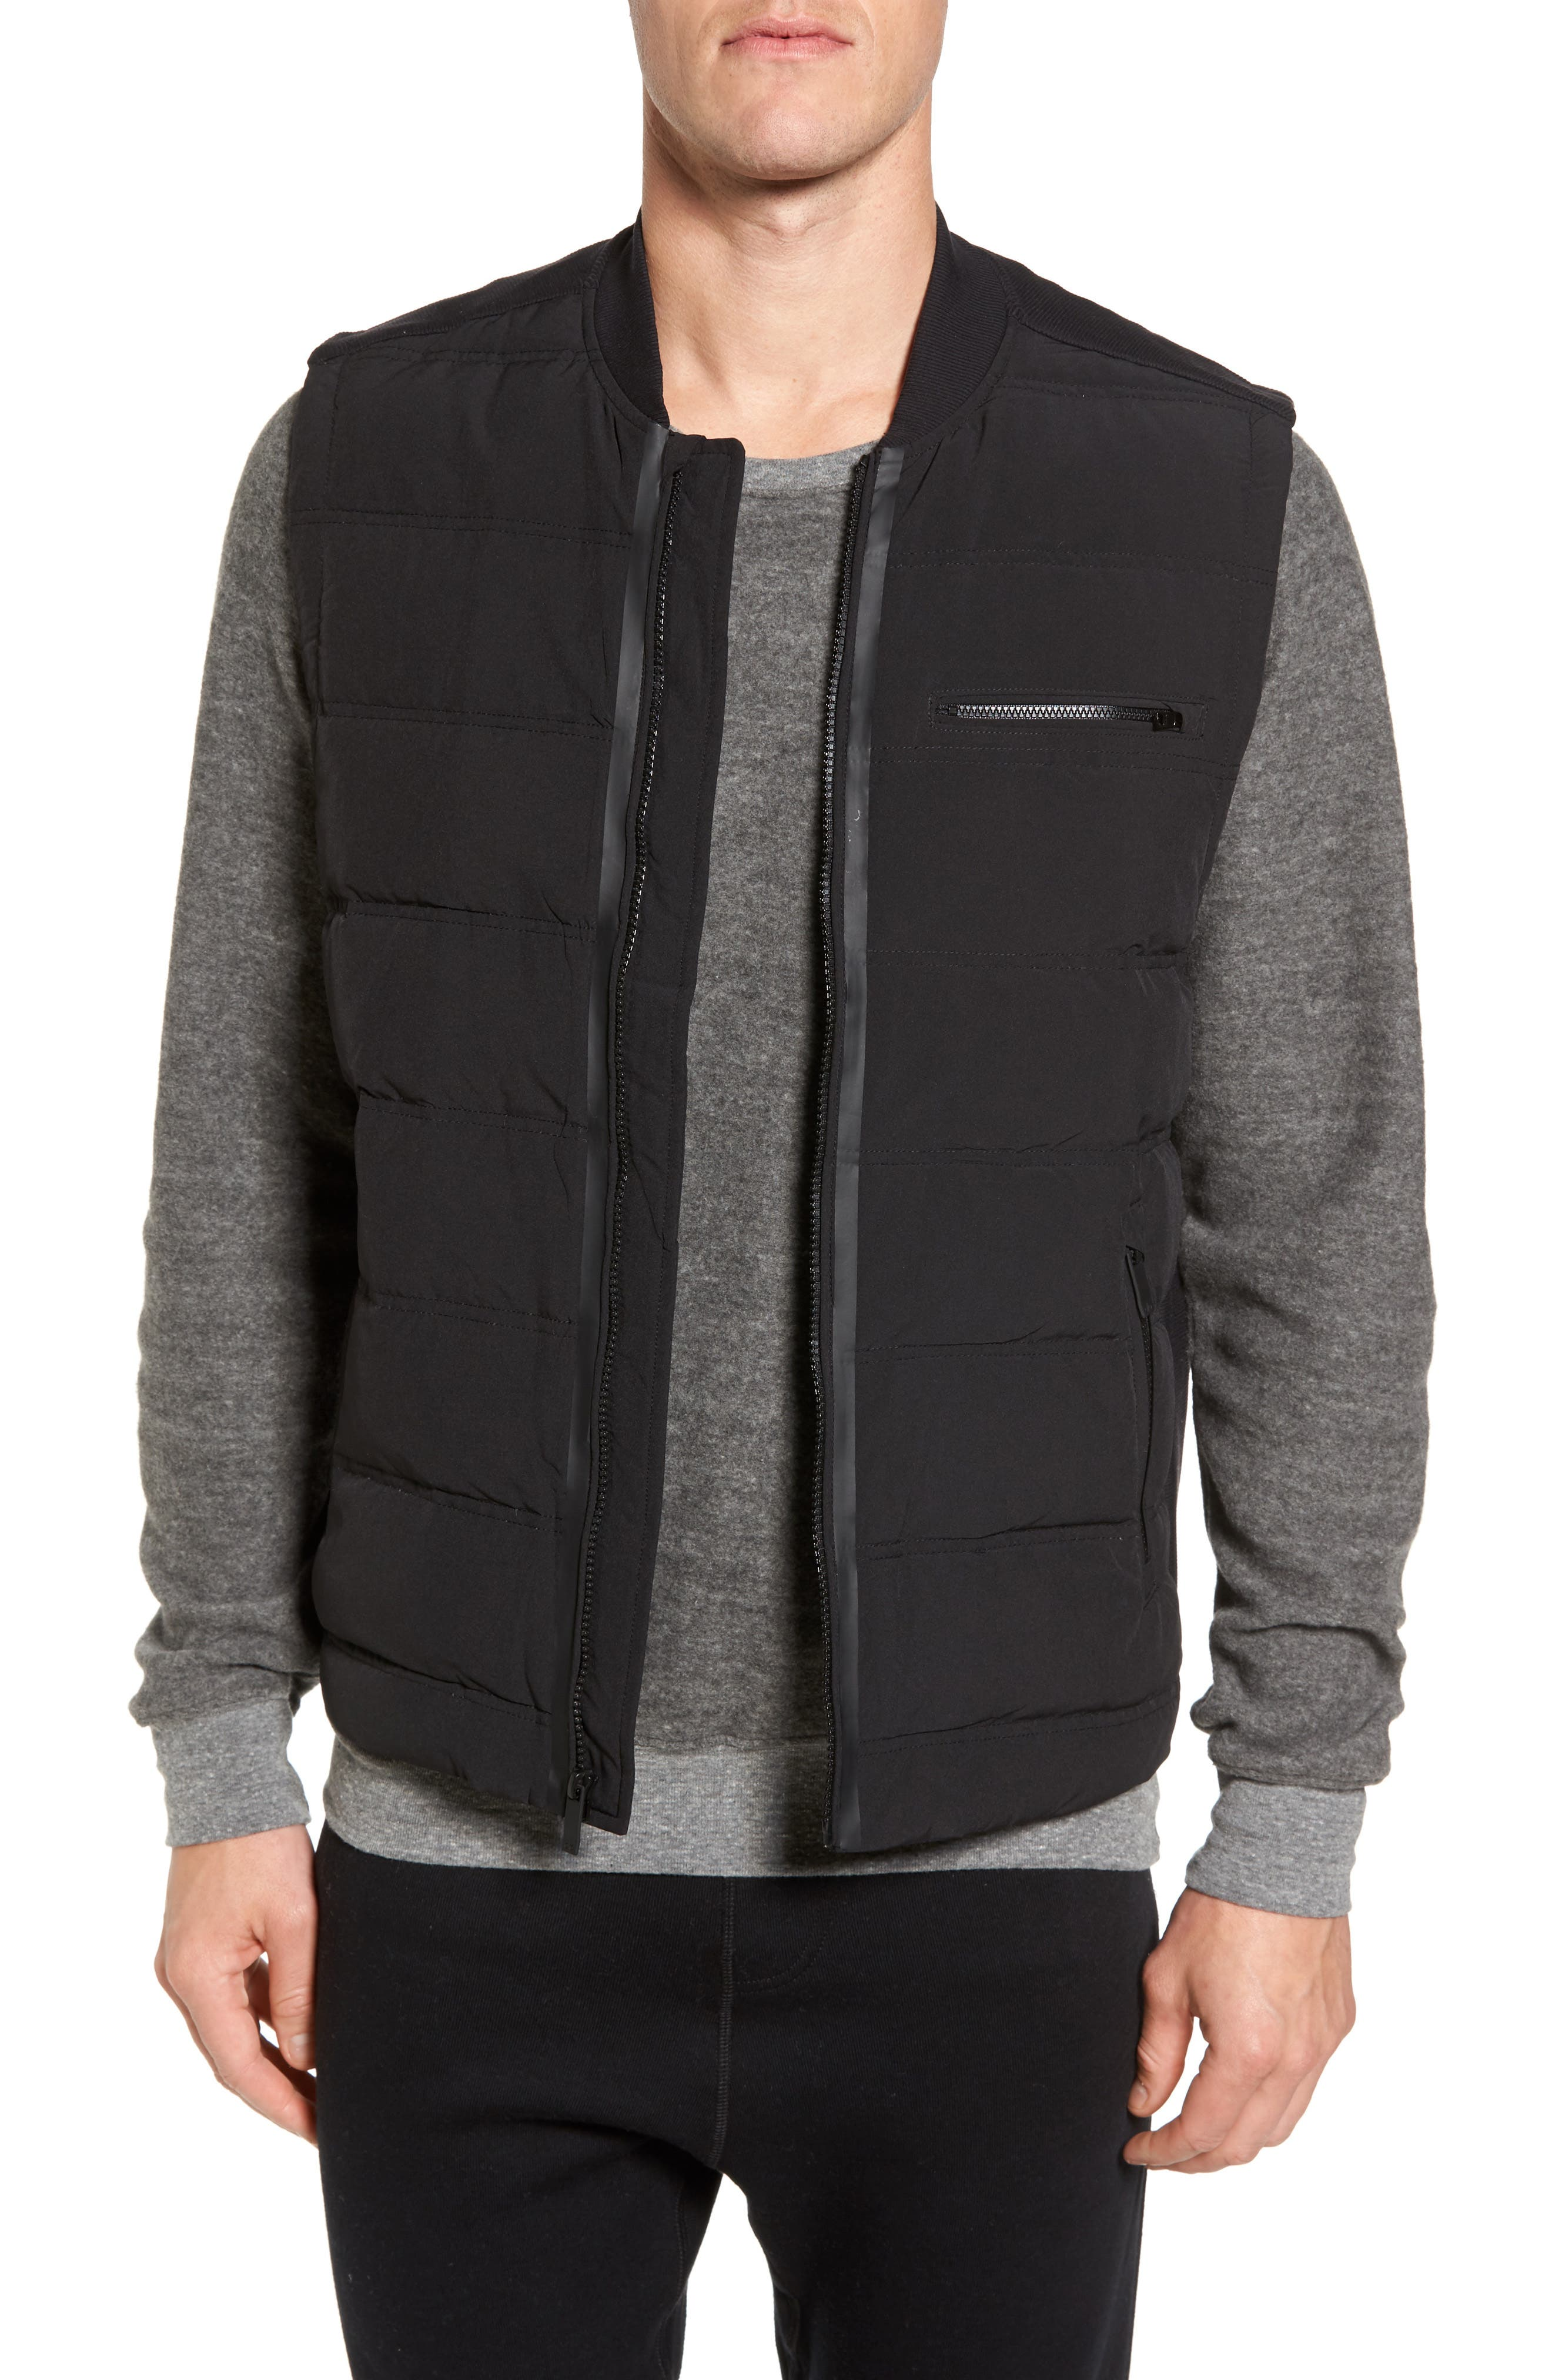 Mantra Relaxed Down Vest,                             Main thumbnail 1, color,                             Black